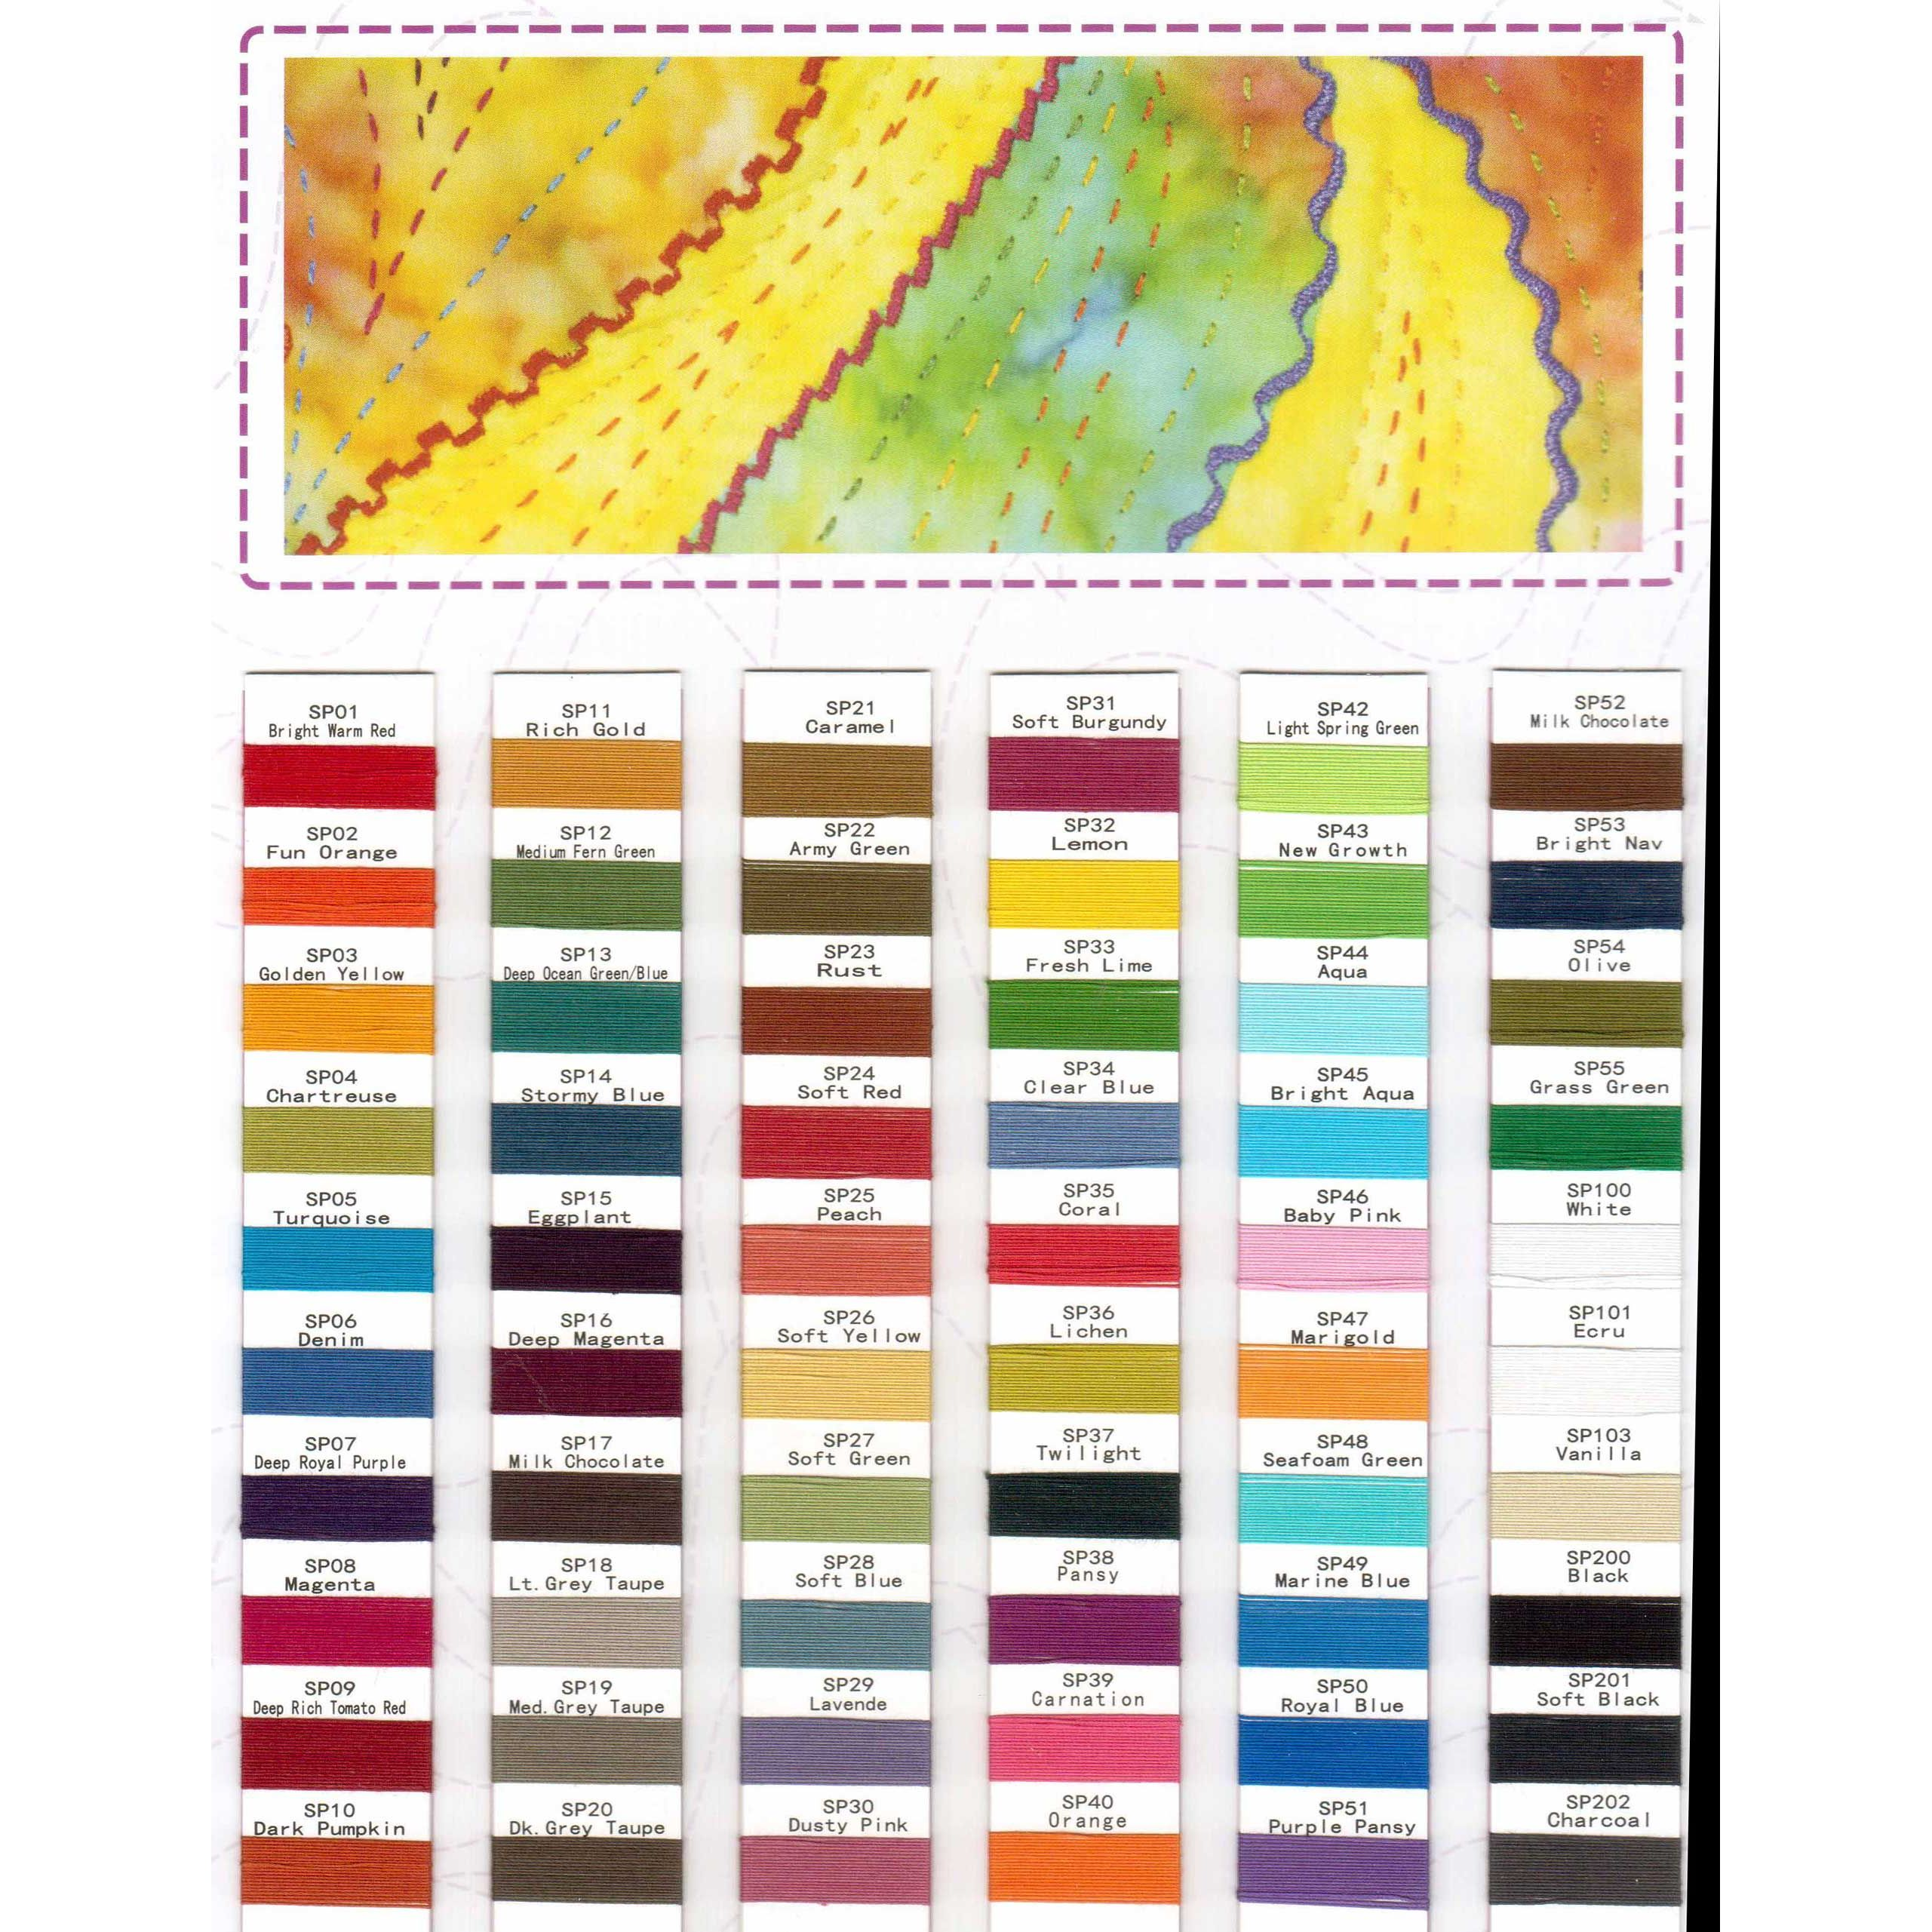 Wonderfil spagetti thread colour chart by wonderfil threads wonderfil spagetti thread colour chart by wonderfil threads thread colour charts nvjuhfo Images